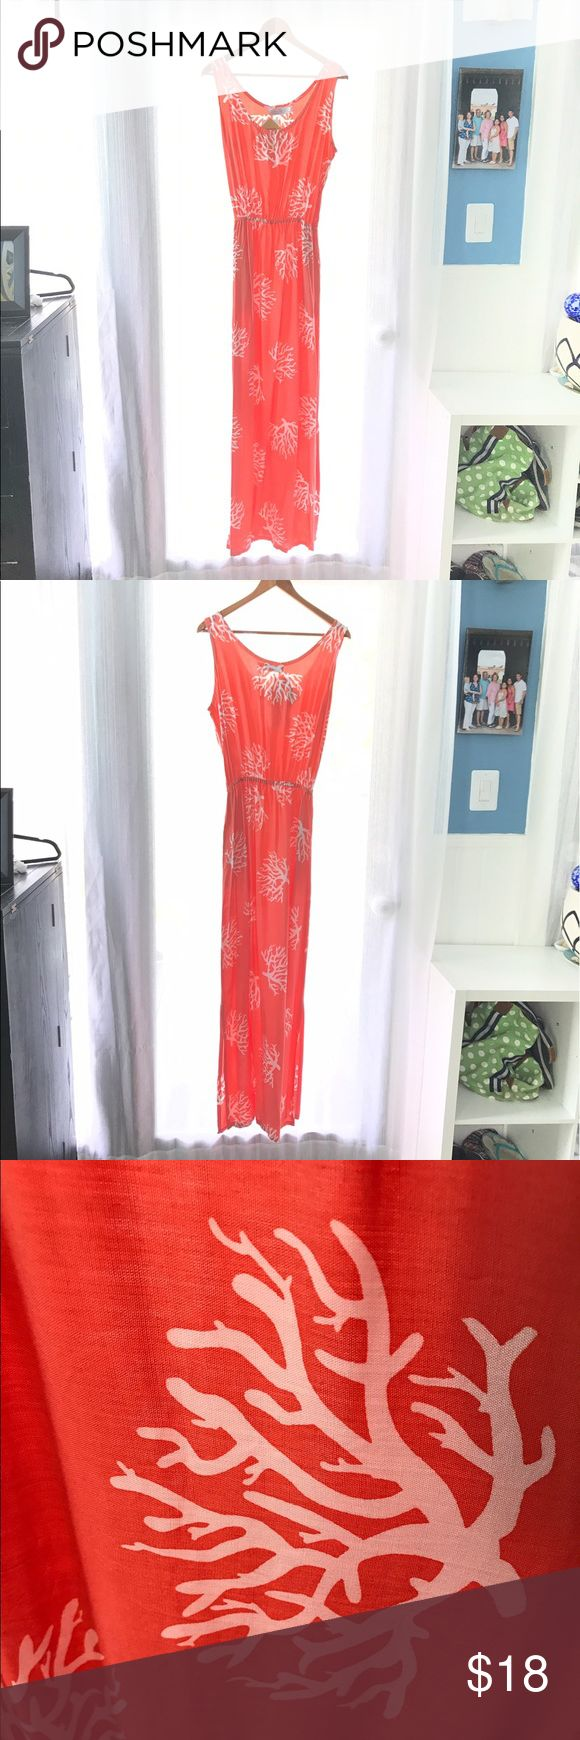 Tybee Island Clothing Co Coral Maxi Dress Tybee Island Clothing Co Coral Maxi Dress. Dress measures 60 inches. Coral design on coral fabric. Elastic waist. 100% rayon.  Perfect for the beach! Tybee Island Clothing Company Dresses Maxi